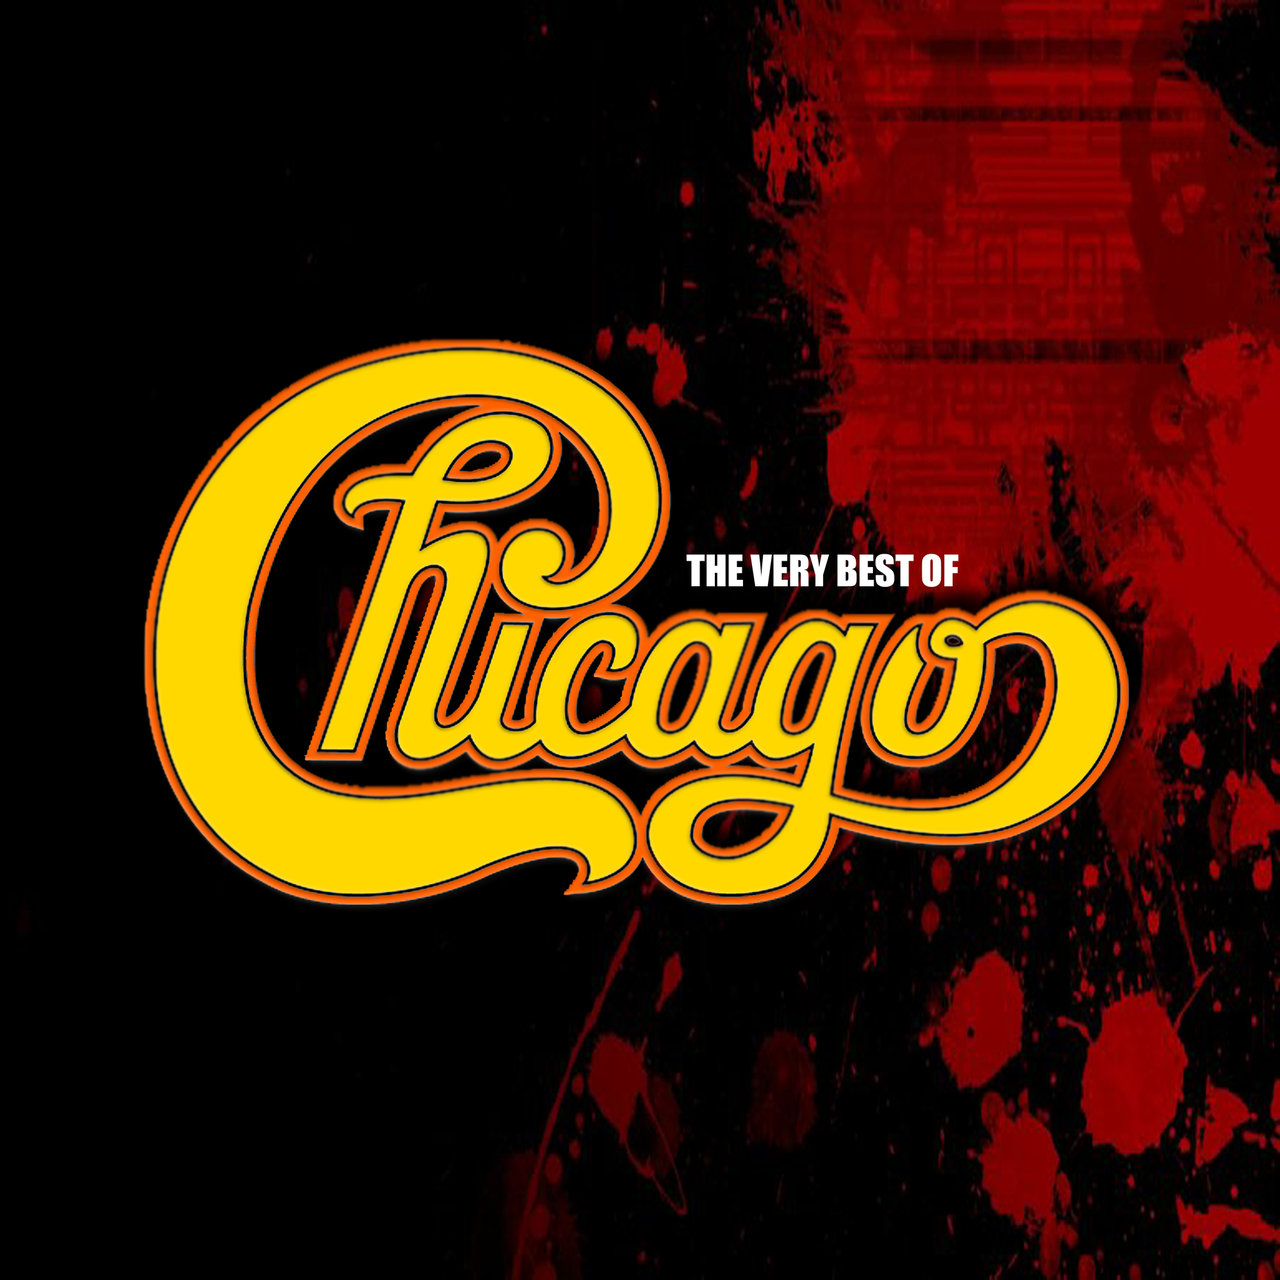 The Very Best Of Chicago